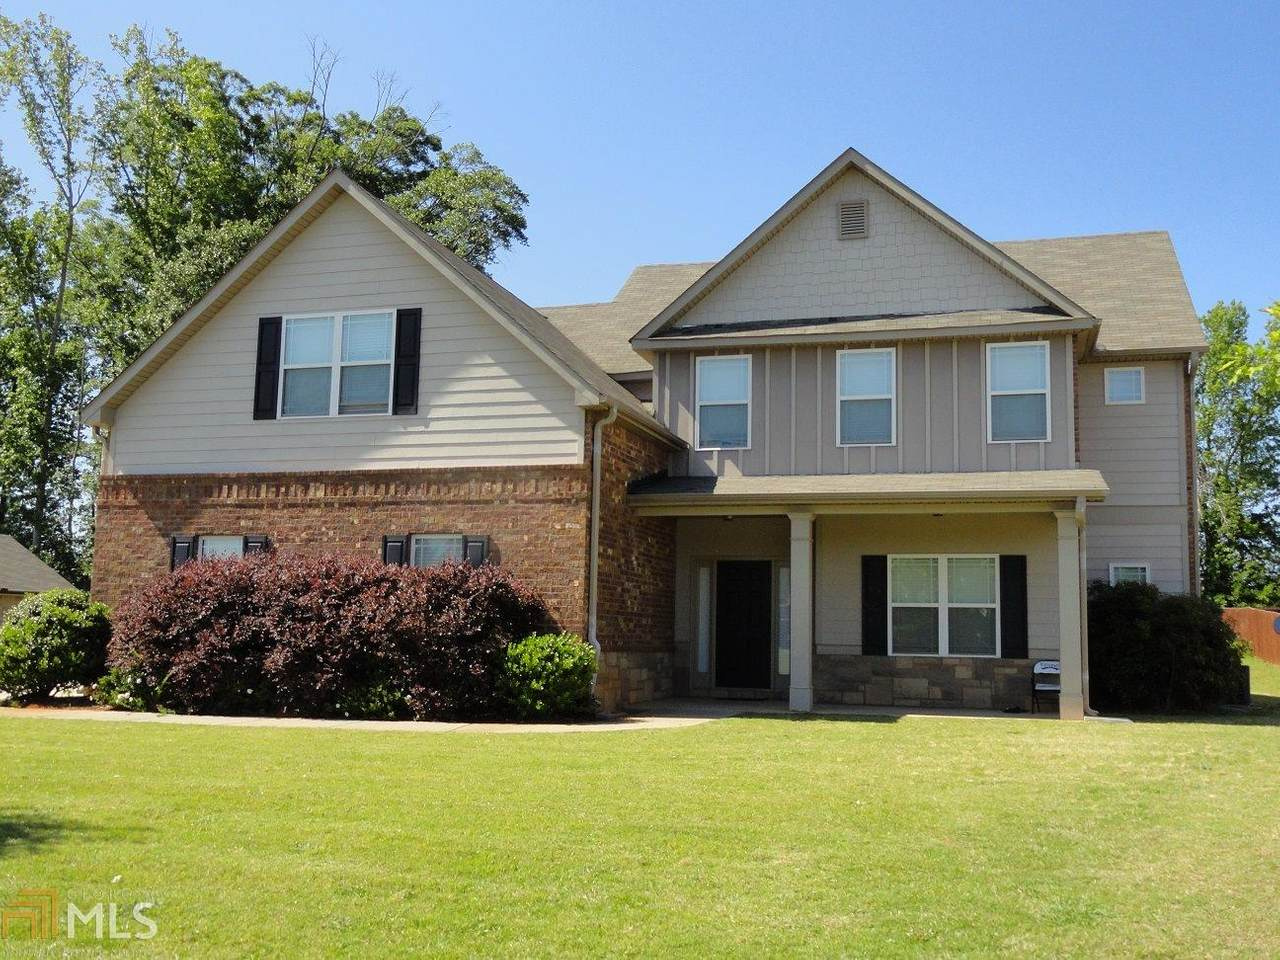 108 Tapestry Dr - Photo 1